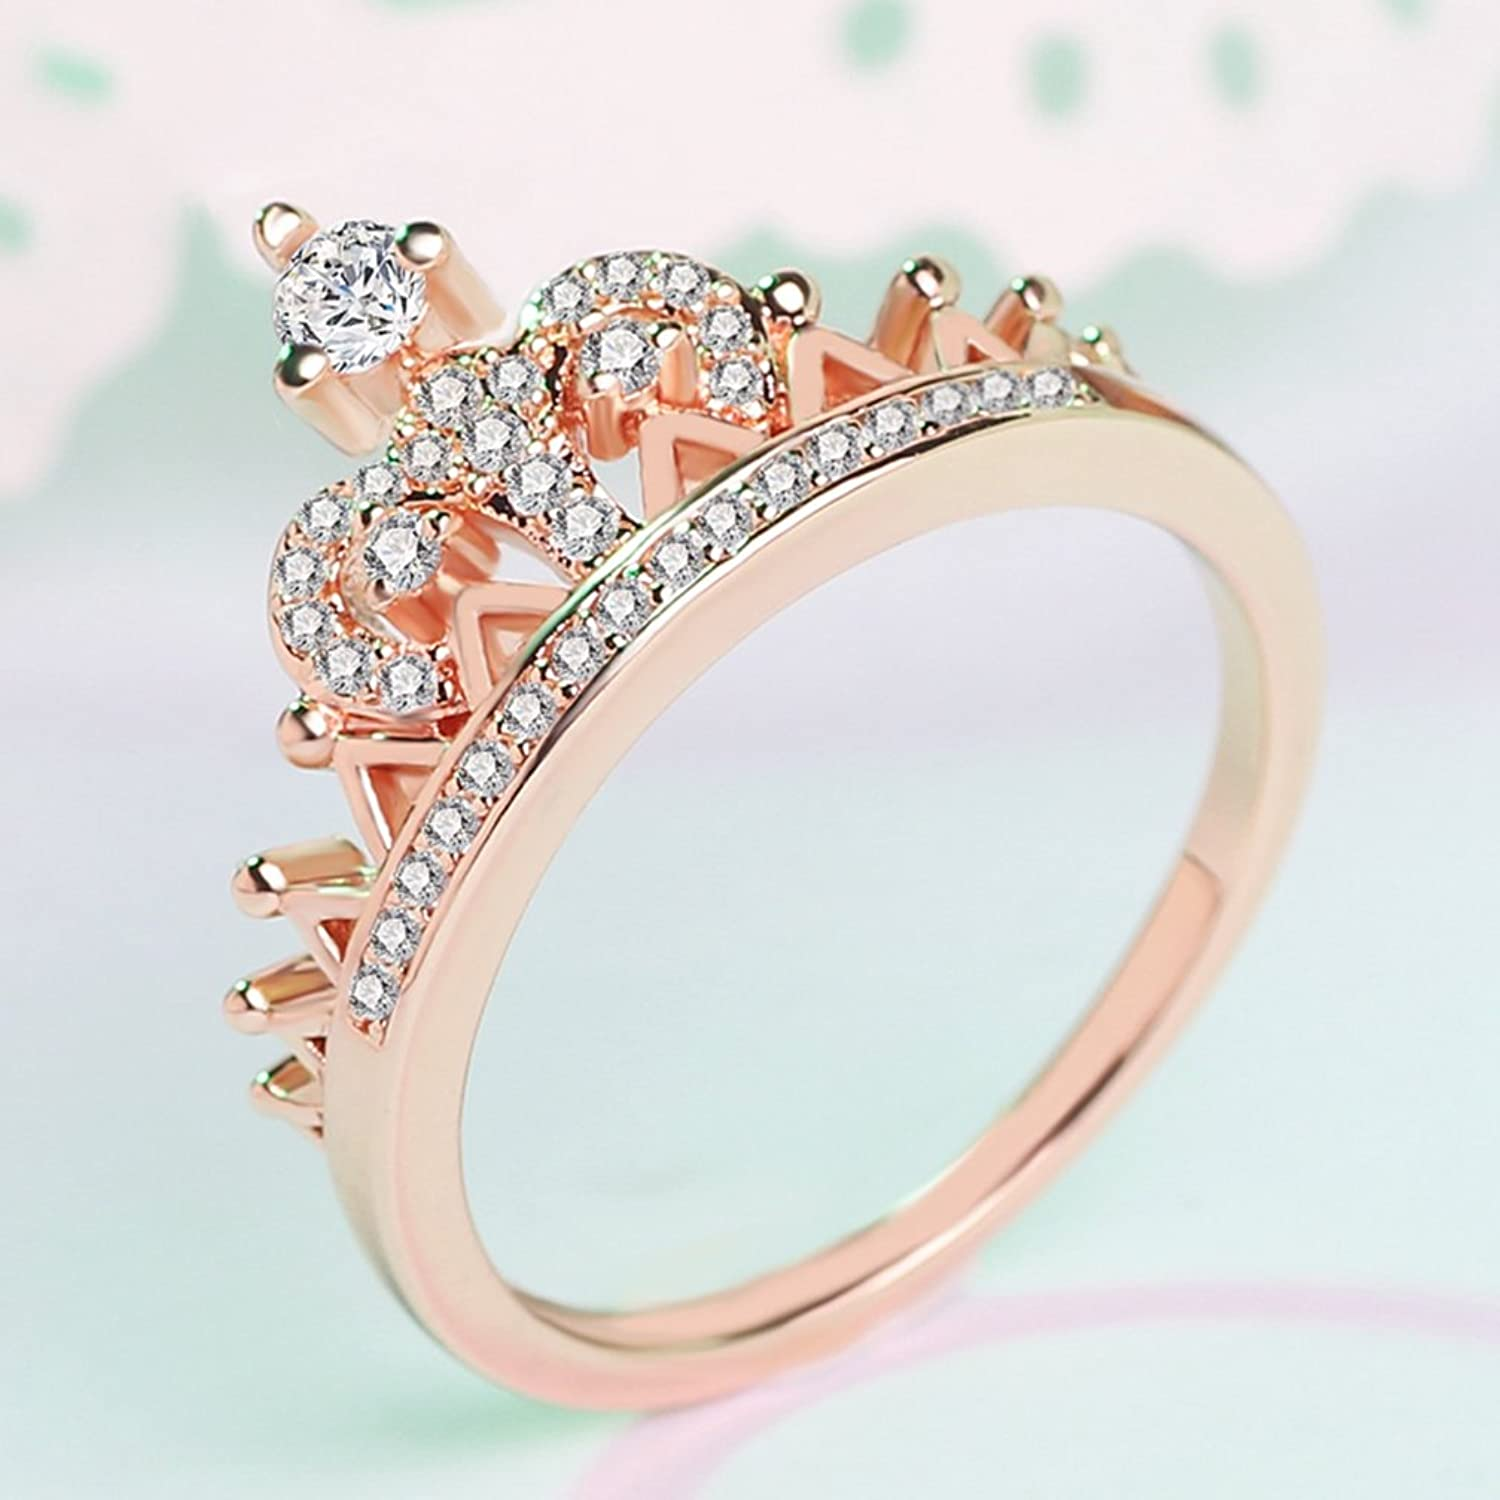 Amazon: Women's Crown Tiara Rings Exquisite 18k Gold Plated Princess  Tiny Cz Diamond Accented Promise Rings For Her Size 510: Jewelry